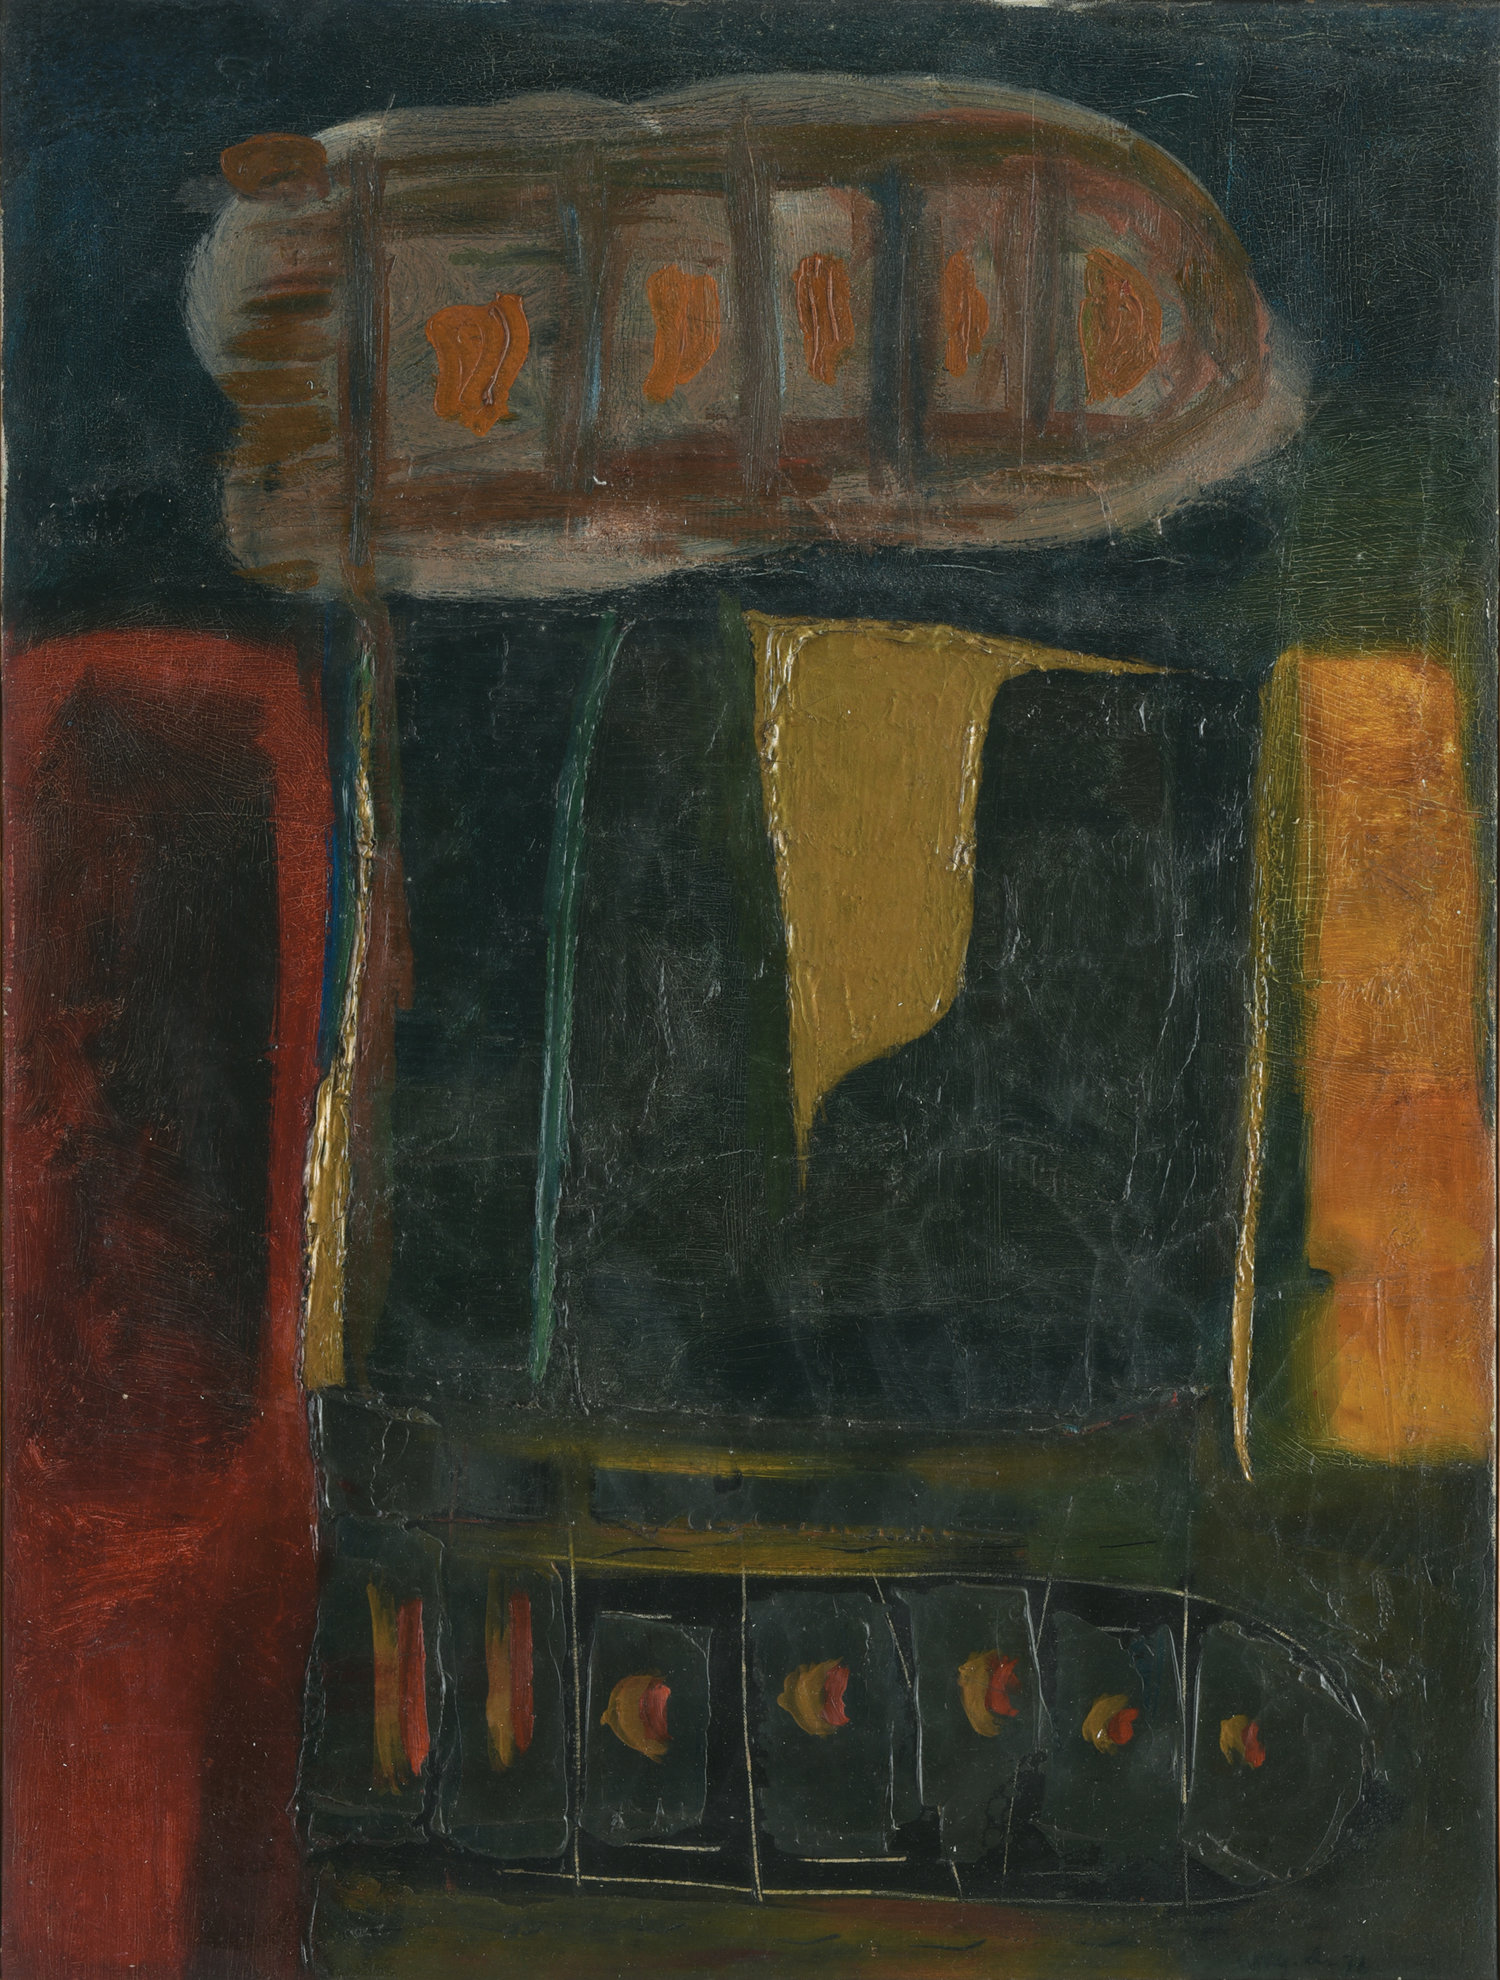 Umi Dachlan, Abstract, oil on canvas, 75 x 57 cm, 1976